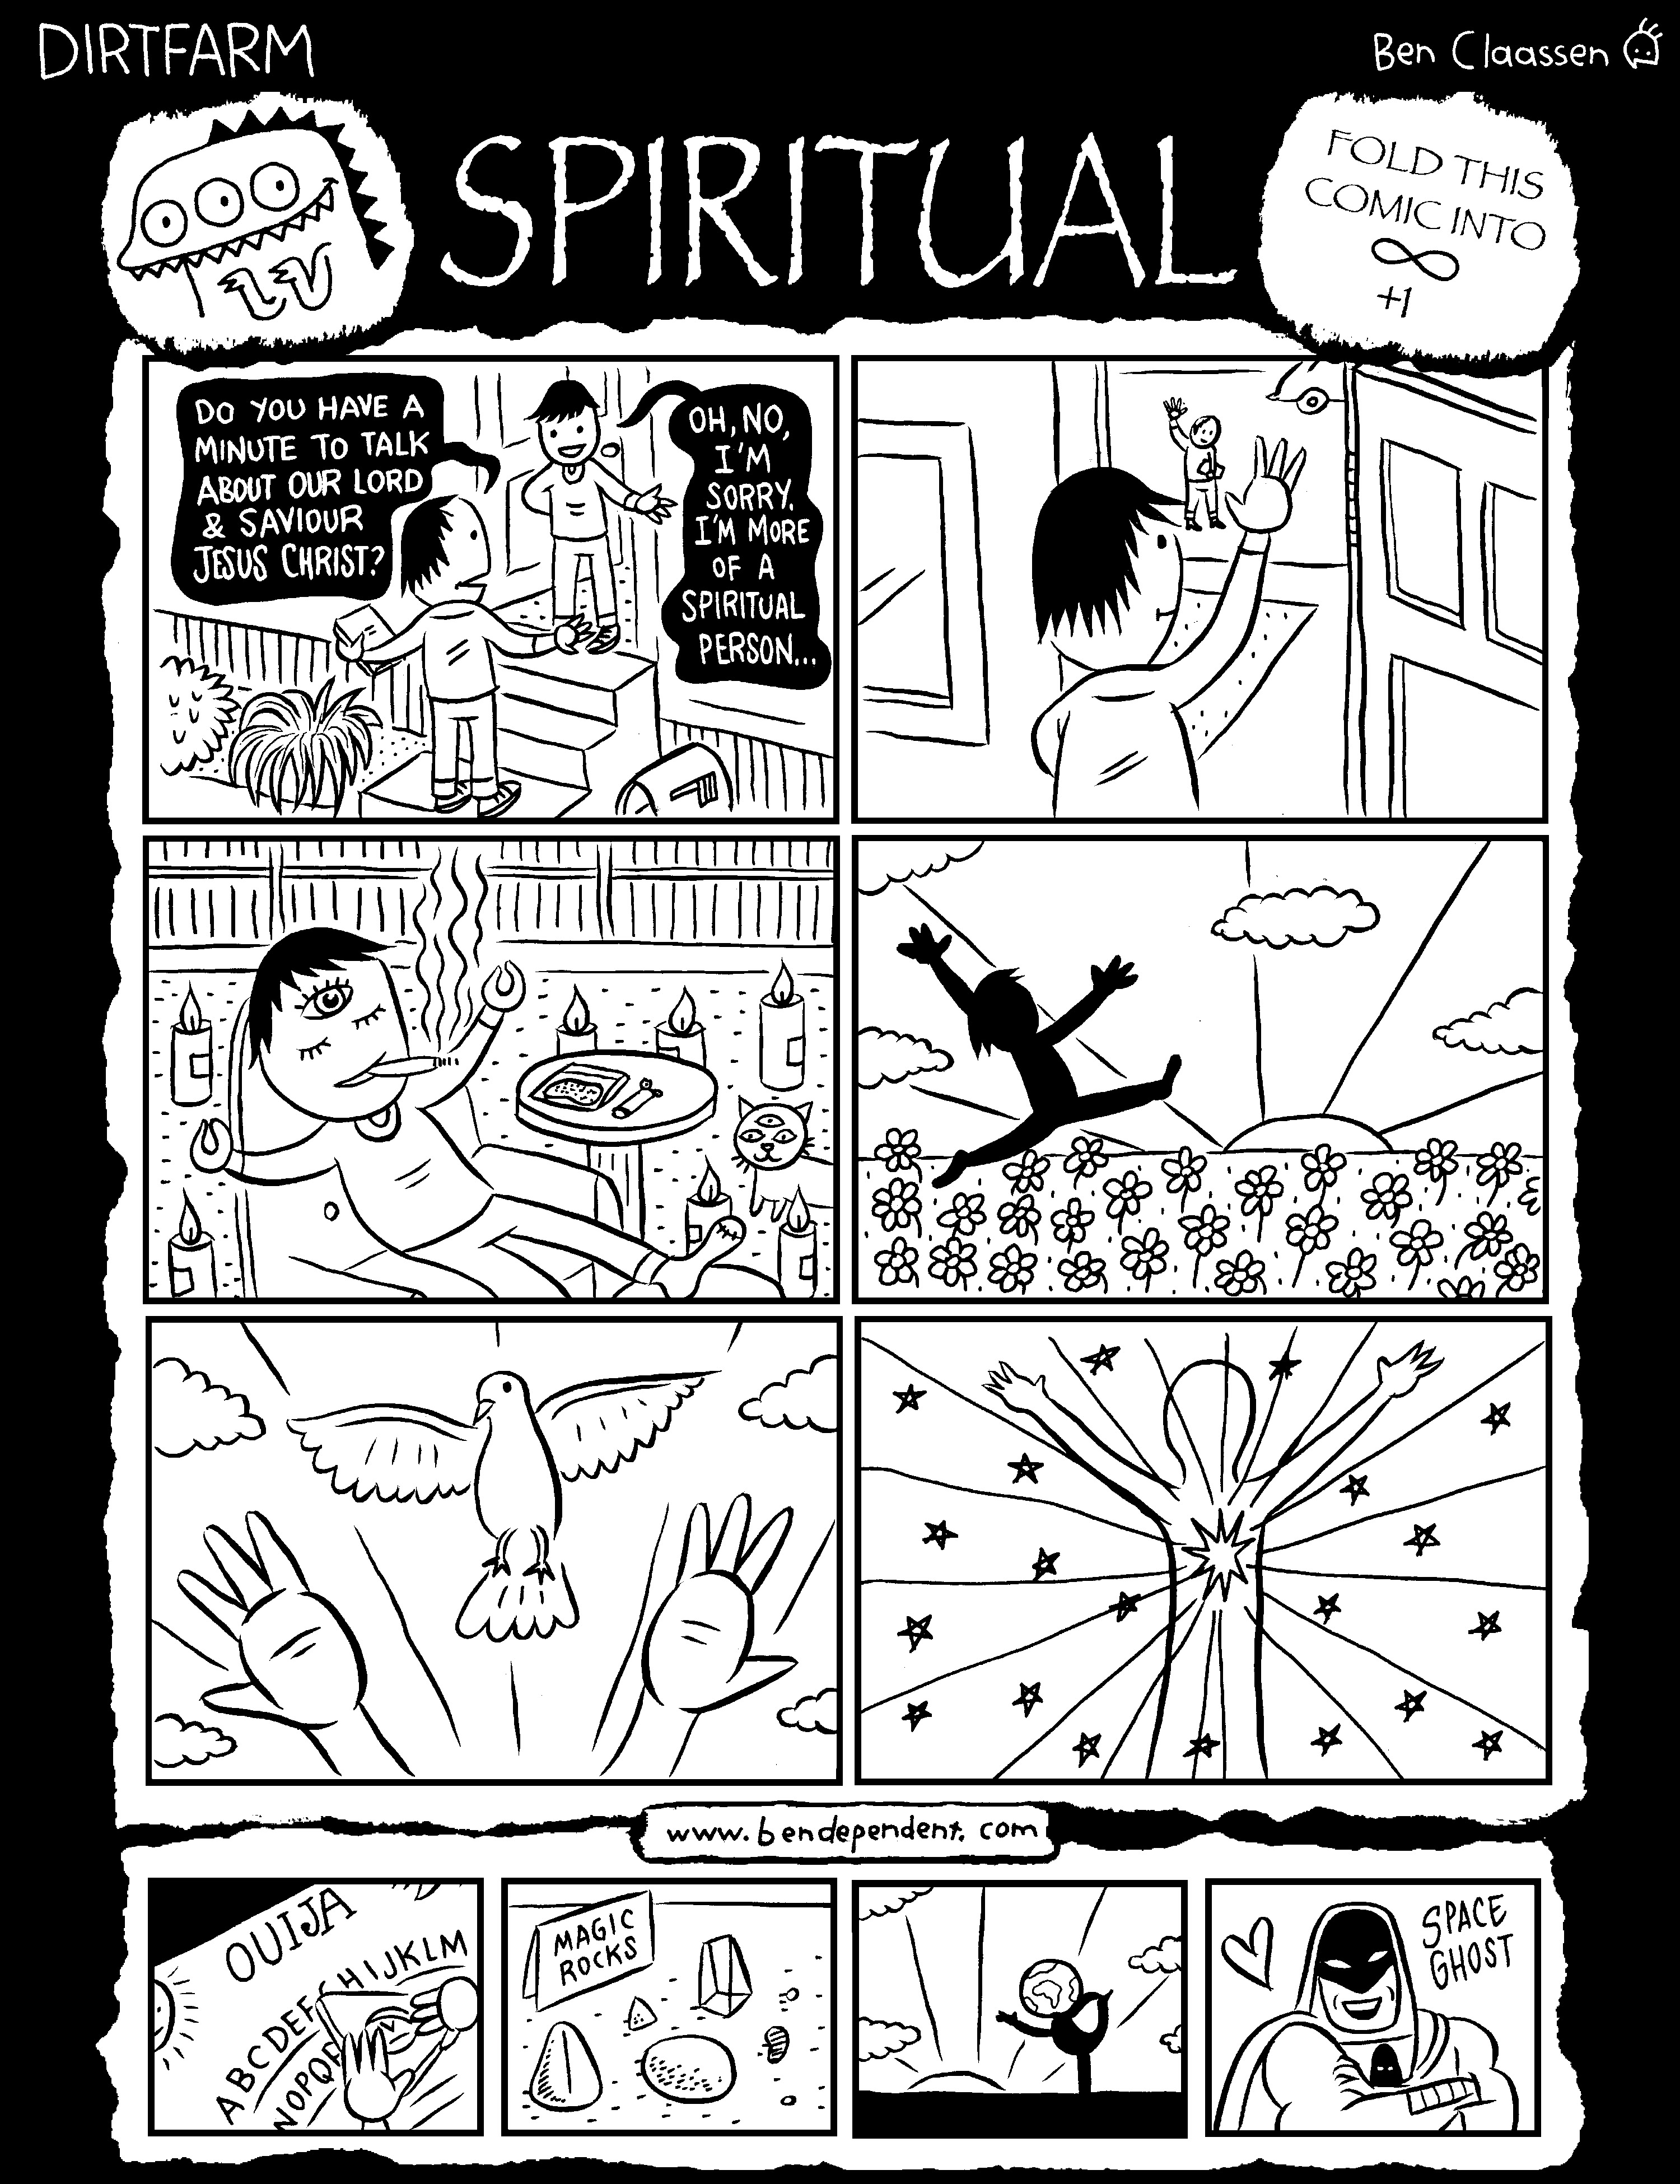 40 ANTIGRAVITY- Comic Dirtfarm by Ben Claassen III-JULY2016-WEB_Page_32_Image_0001